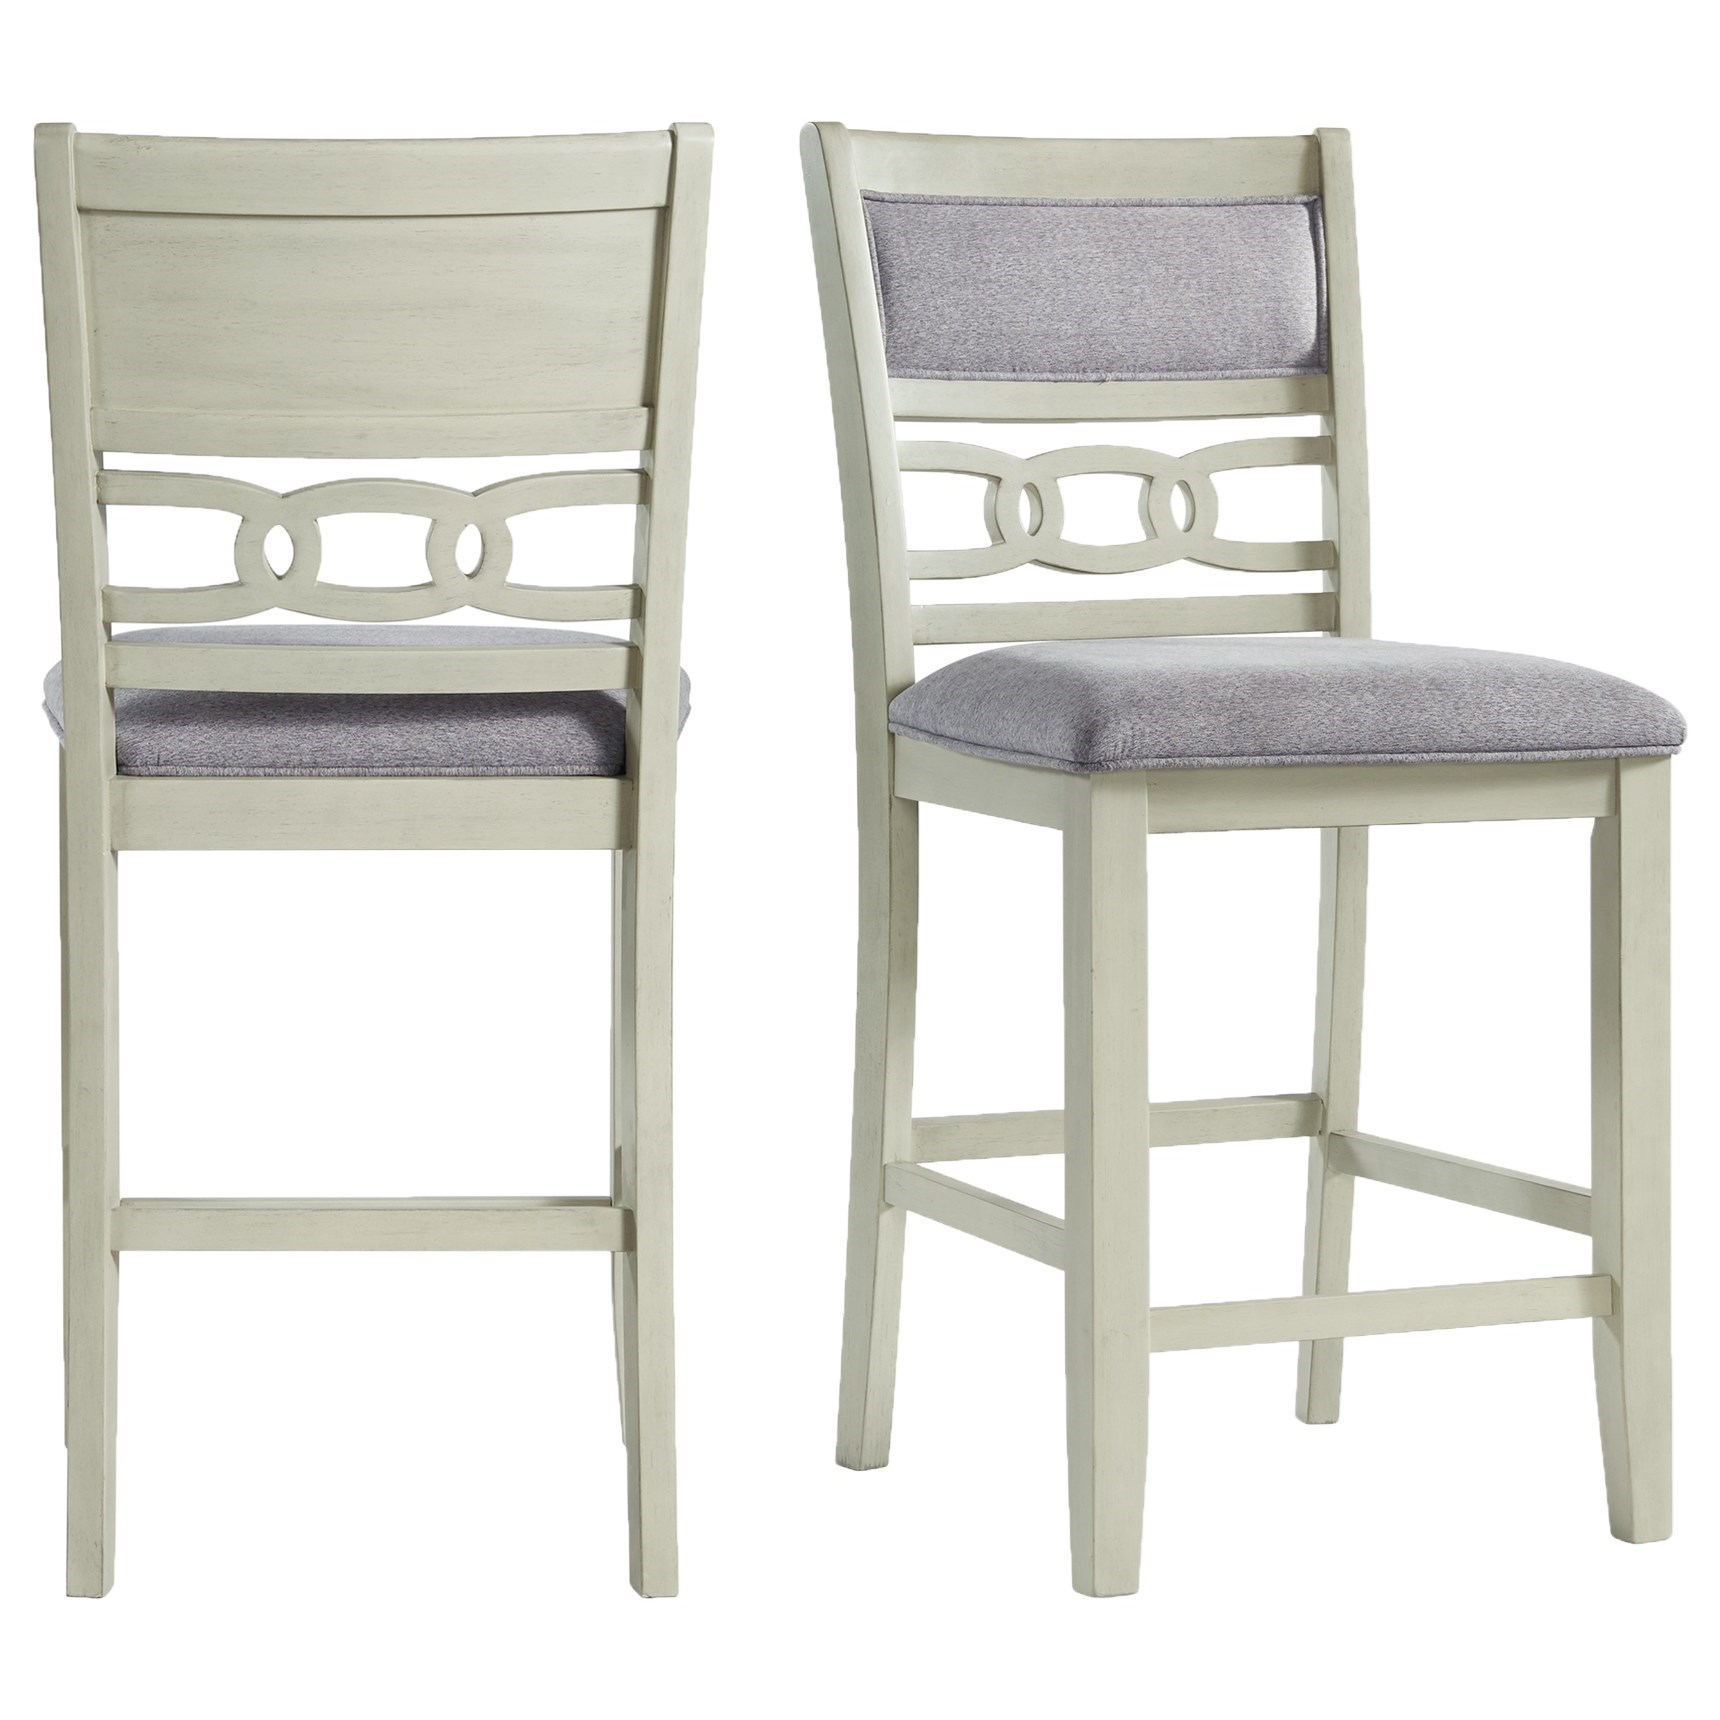 Amherst Counter Height Side Chair by Elements International at Furniture Fair - North Carolina